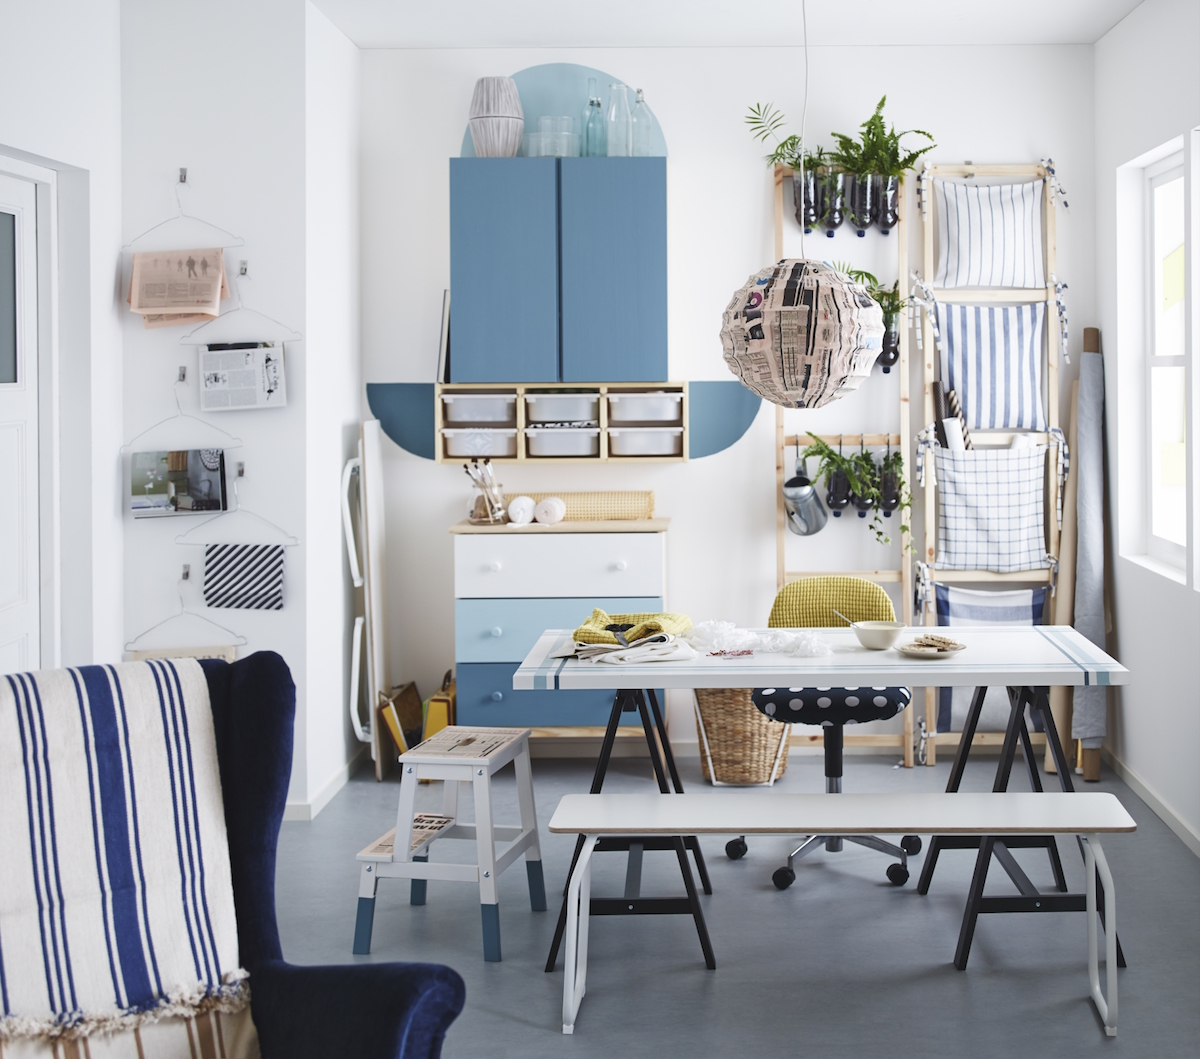 The Unusual Research Methods Inspiring IKEA's New Products